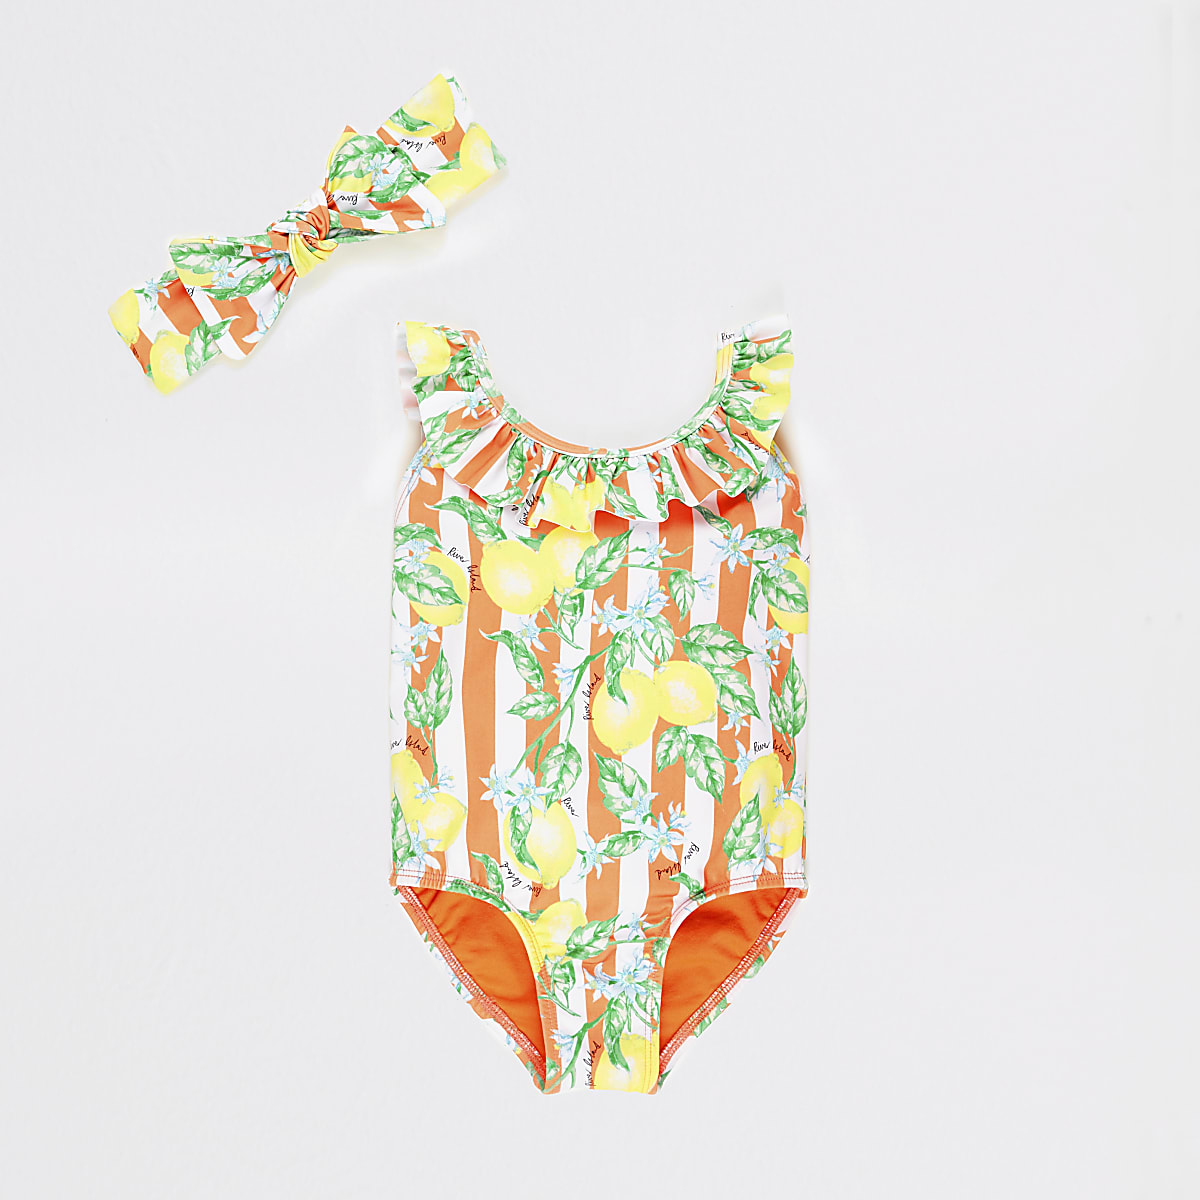 d13765e4f5610 Mini girls orange lemon print swimsuit set - Baby Girls Swimwear - Mini  Girls - girls